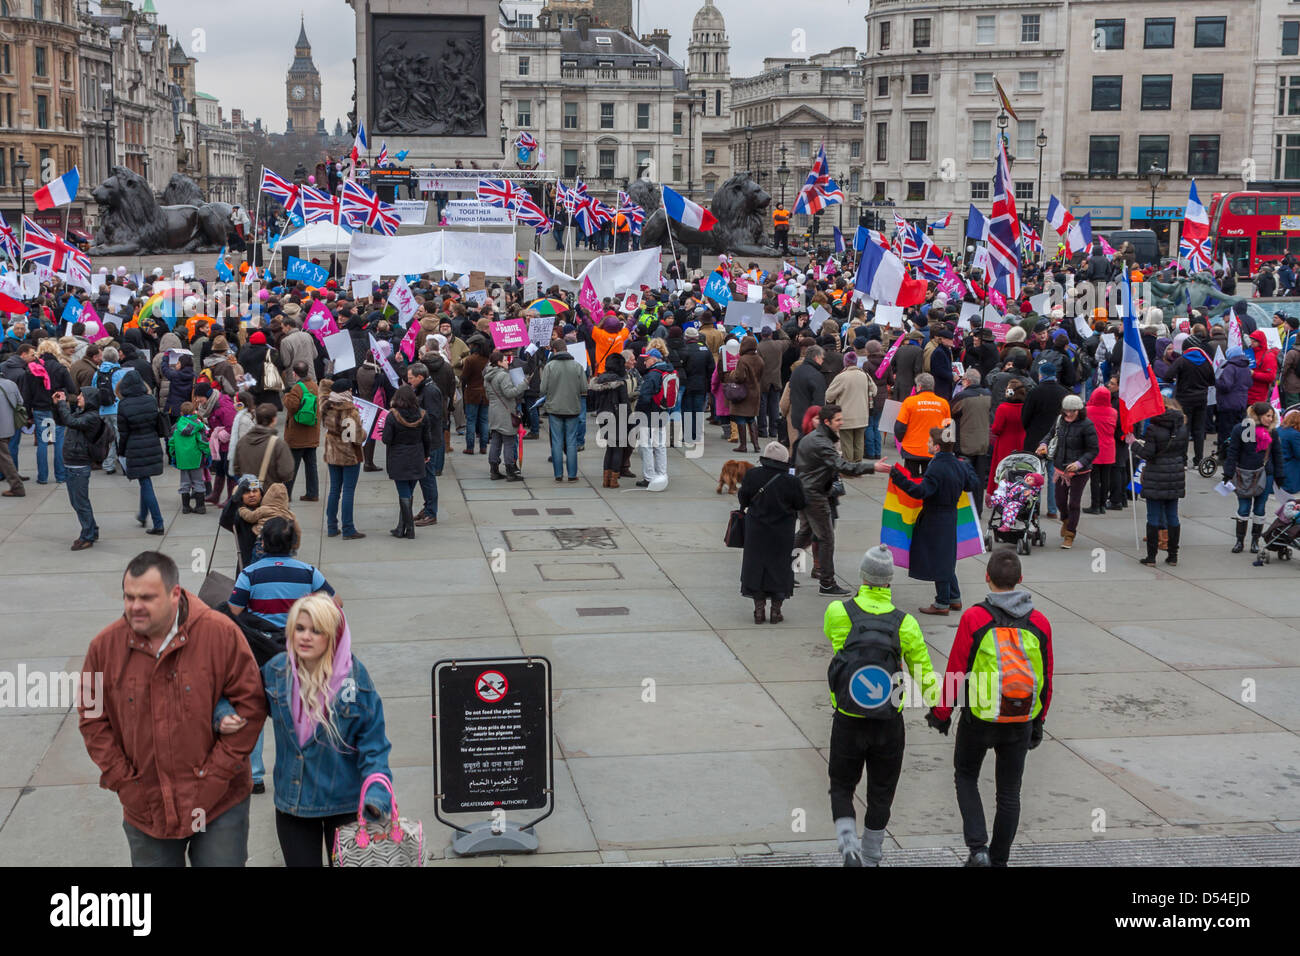 Protesters on both sides of the argument on marriage equality gathered in Trafalgar Square, London. 24 March 2013. - Stock Image